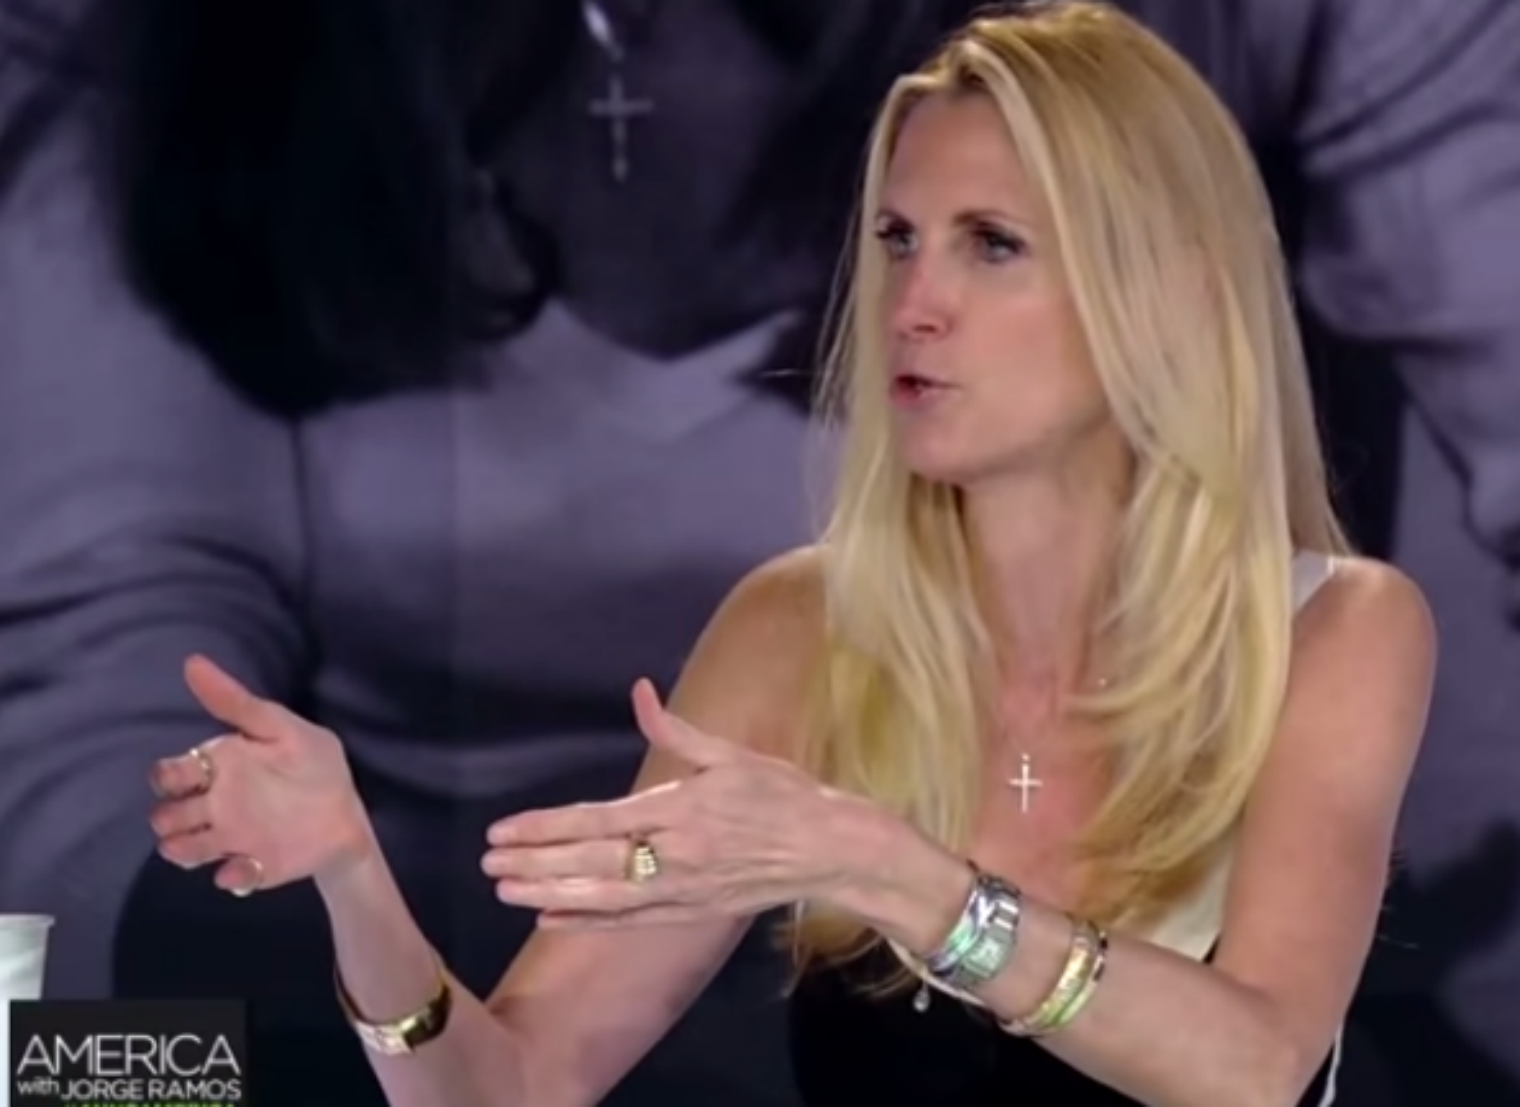 RT @thei100: Ann Coulter refused to hug an undocumented immigrant. Yes really http://t.co/wyUvNalfOB http://t.co/haOjntiBJe